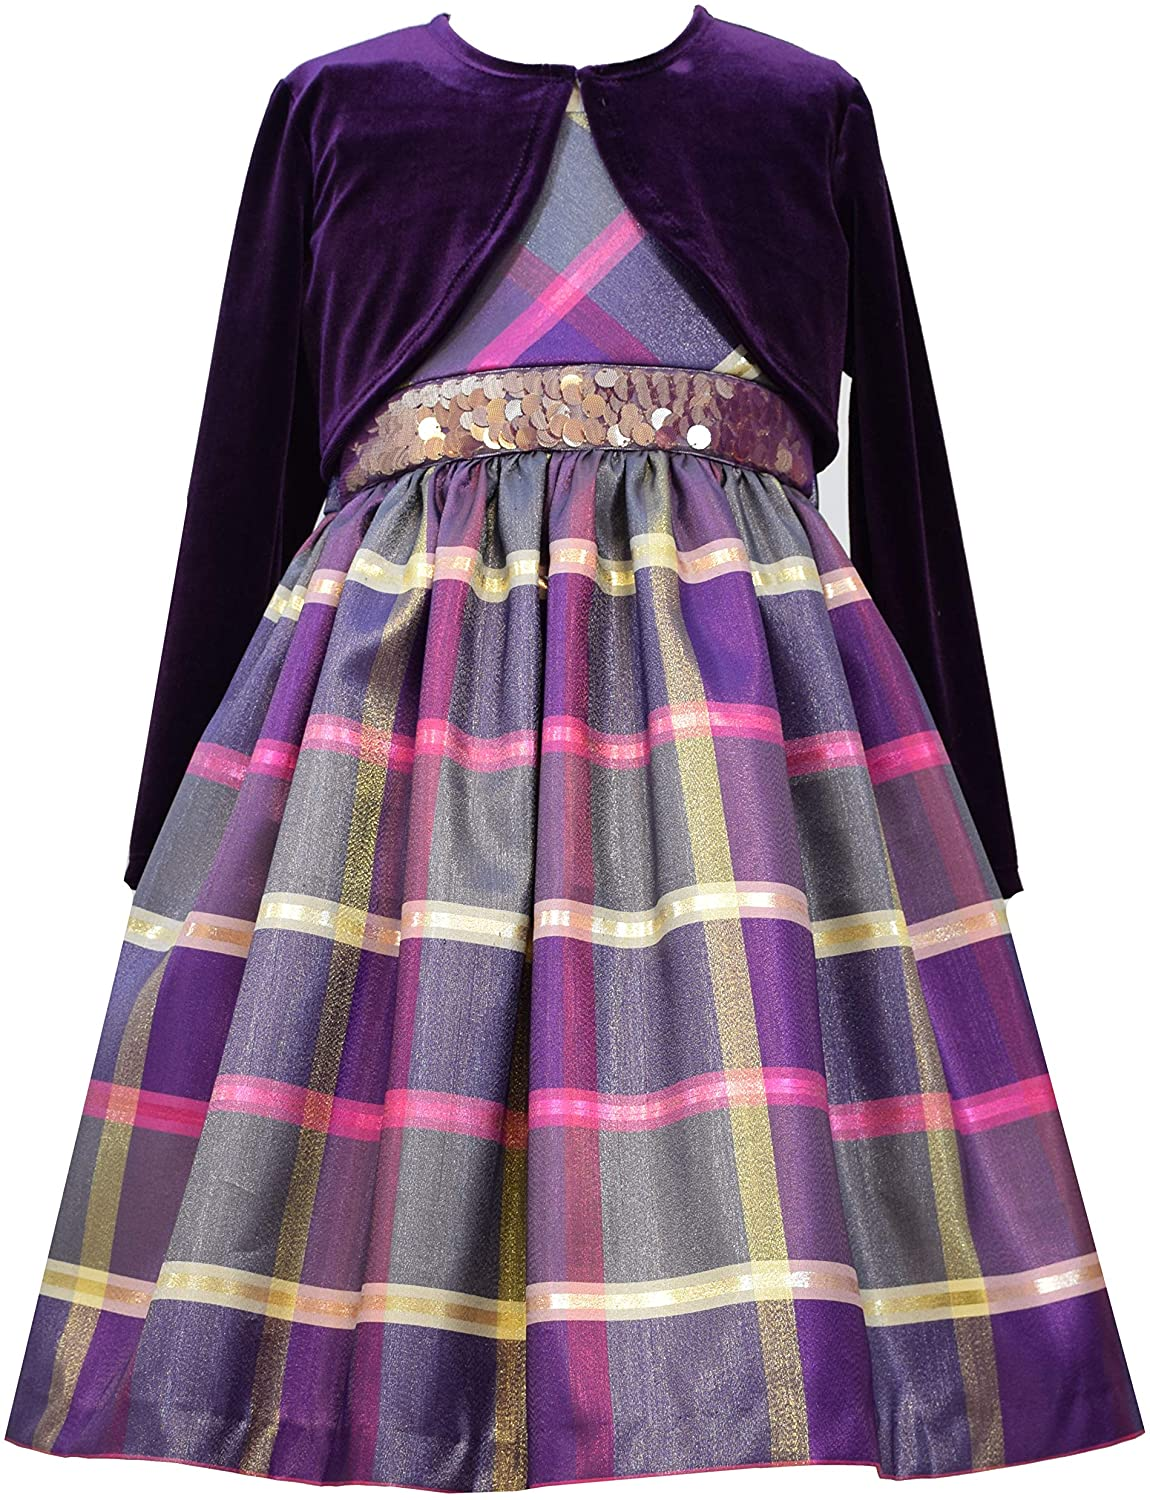 Bonnie Jean Girl's Holiday Christmas Dress 7-16 - Purple Plaid with Cardigan